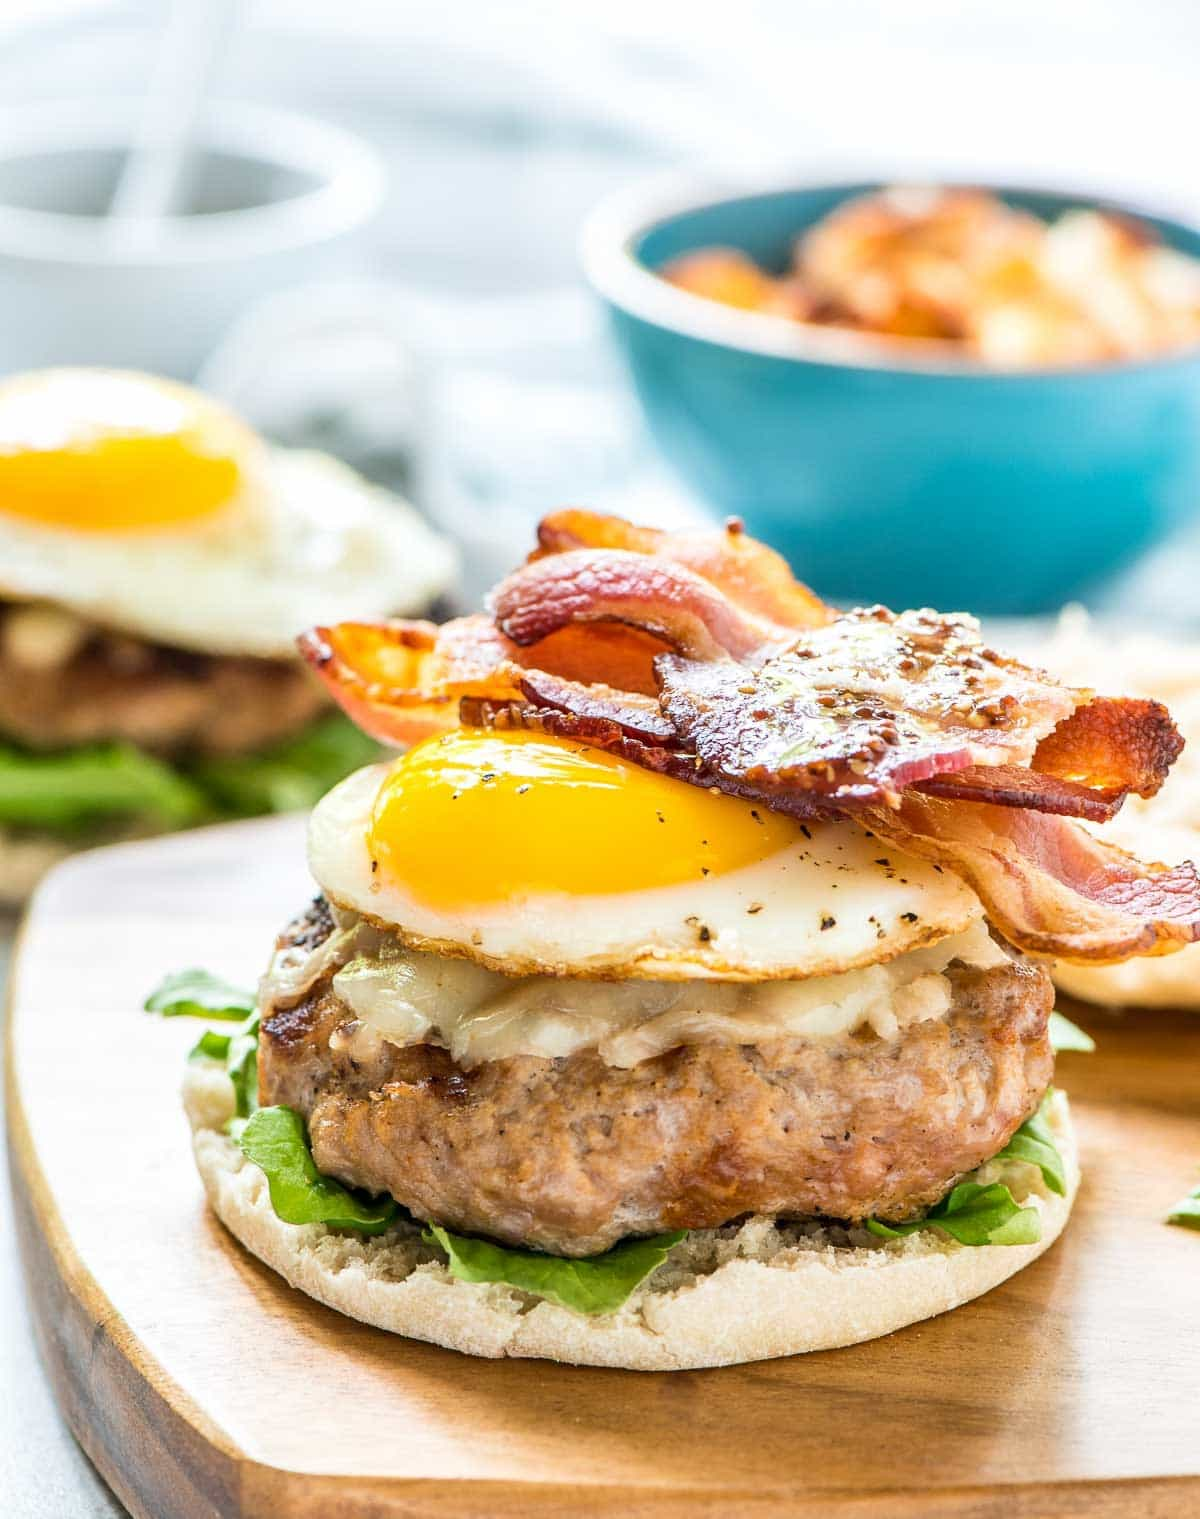 Maple Bacon Breakfast Burger — a juicy turkey burger patty with maple mustard drizzle, melty cheddar cheese, crispy bacon and a fried egg served on an English muffin. Could do for brunch, but we loved them for dinner! @wellplated